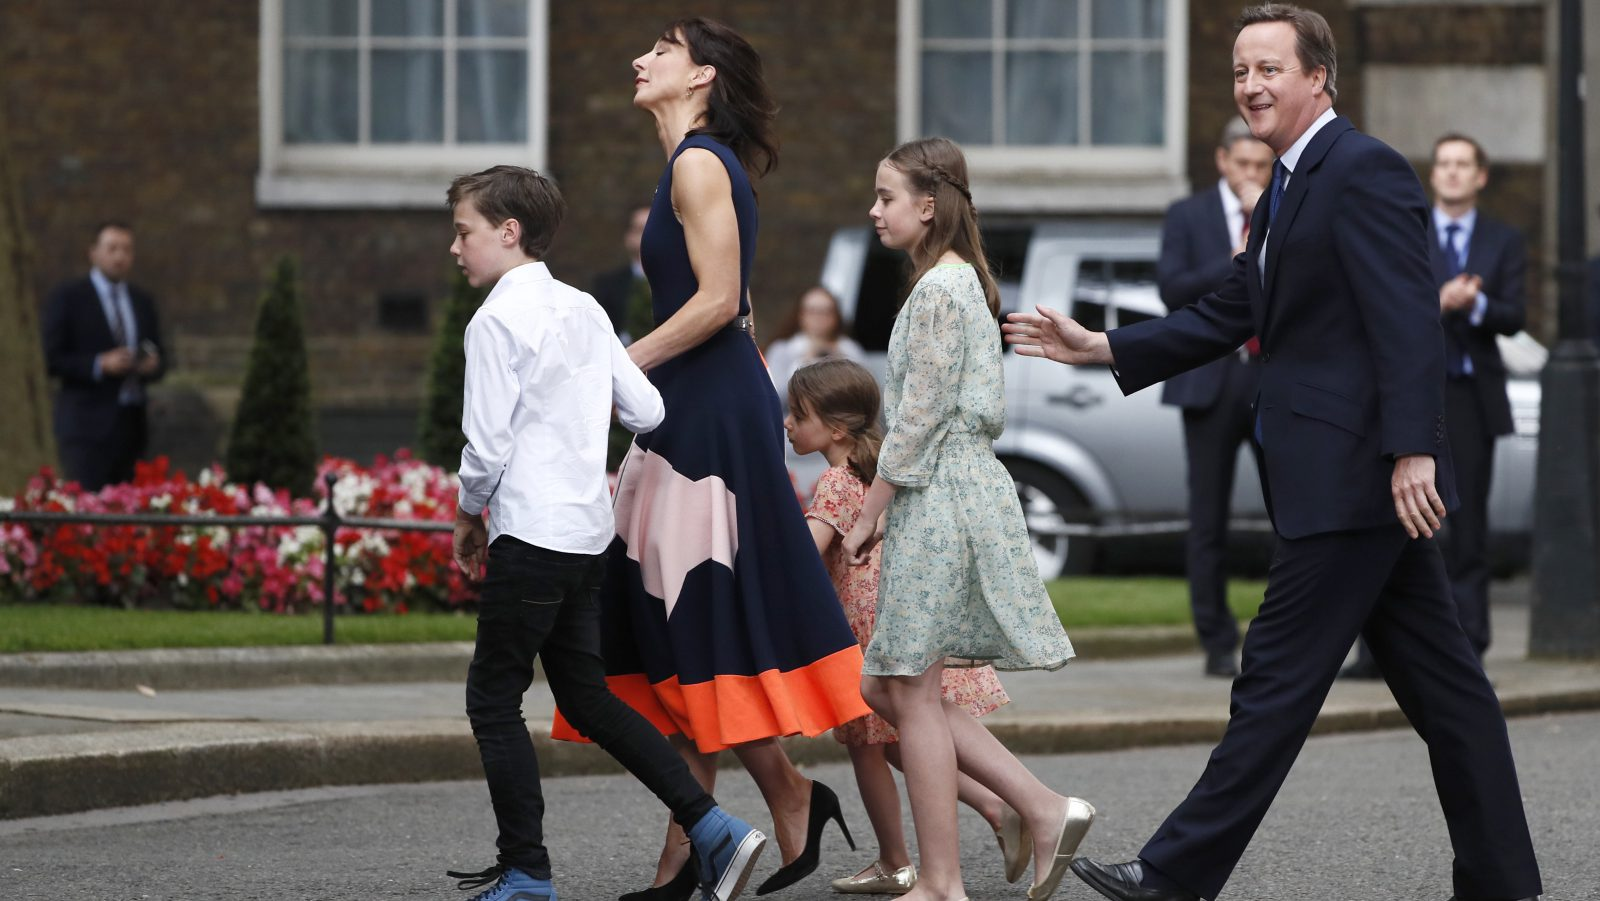 Britain's outgoing Prime Minister, David Cameron, accompanied by his wife Samantha, daughters Nancy and Florence (3rd L) and son Arthur, prepare to pose for photographs in front of number 10 Downing Street, on his last day in office as Prime Minister, in central London, Britain July 13, 2016.   REUTERS/Stefan Wermuth  - RTSHREO